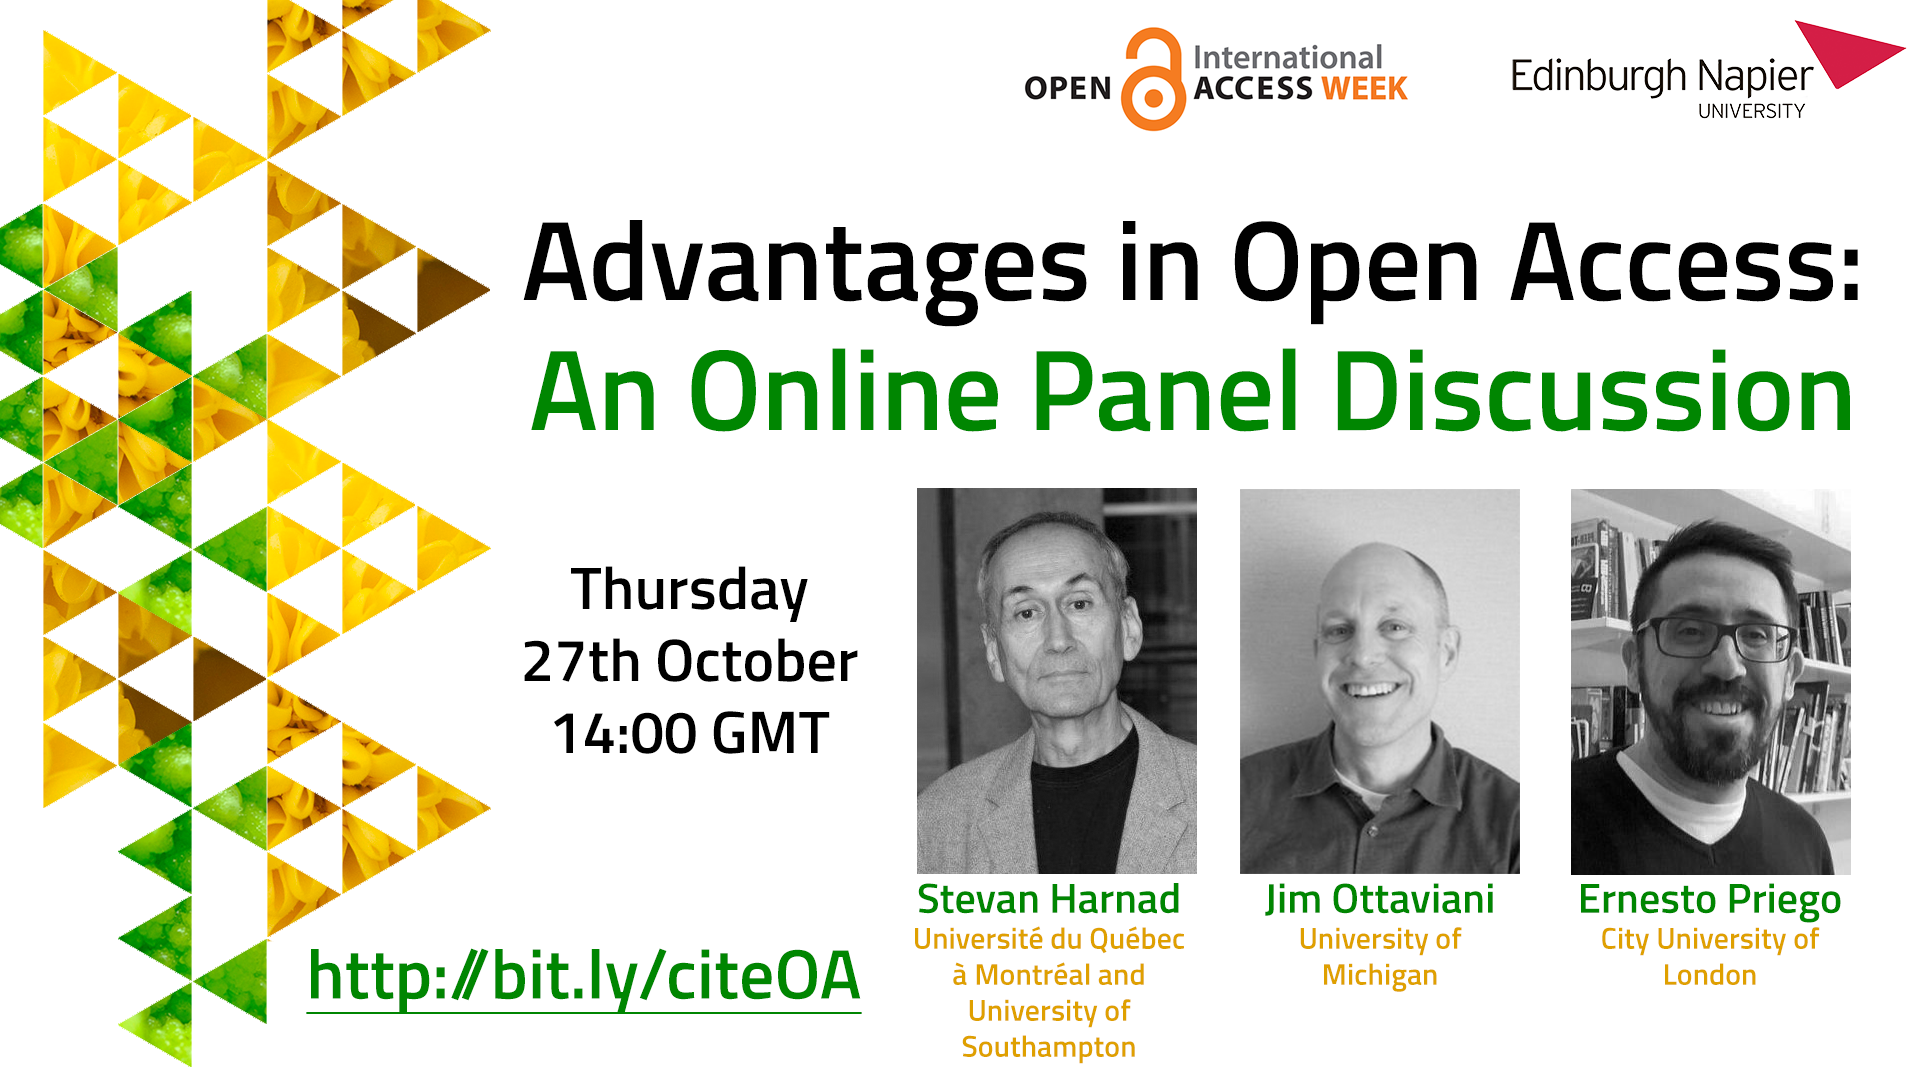 Poster for the online panel discussion 'Advantages in Open Access'